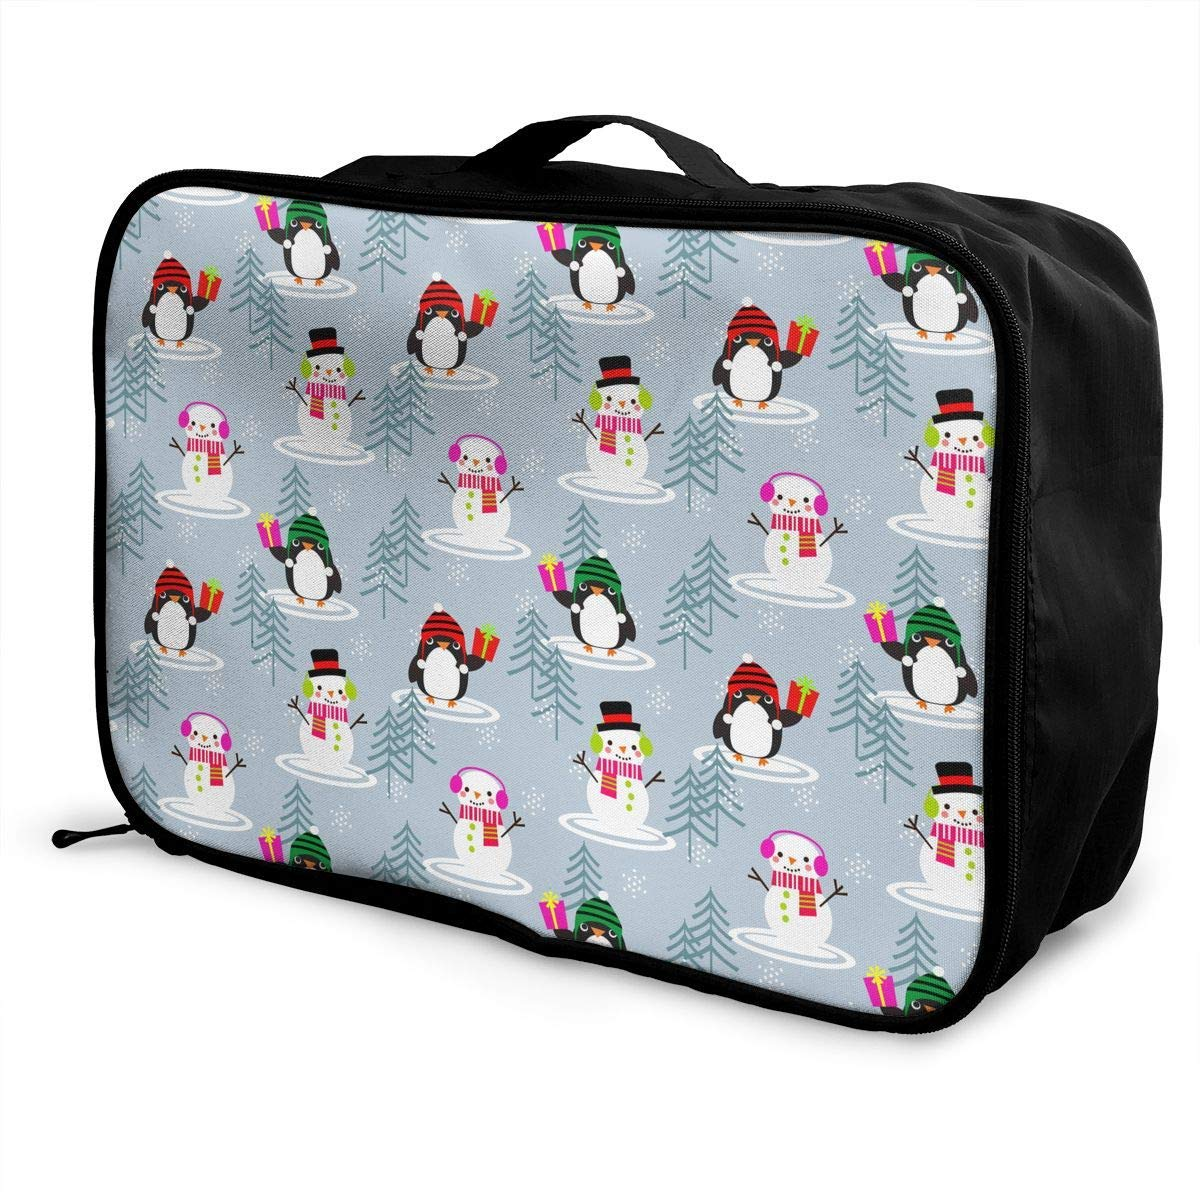 Cute Snowman And Penguins Pattern JTRVW Travel Luggage Trolley Bag Portable Lightweight Suitcases Duffle Tote Bag Handbag